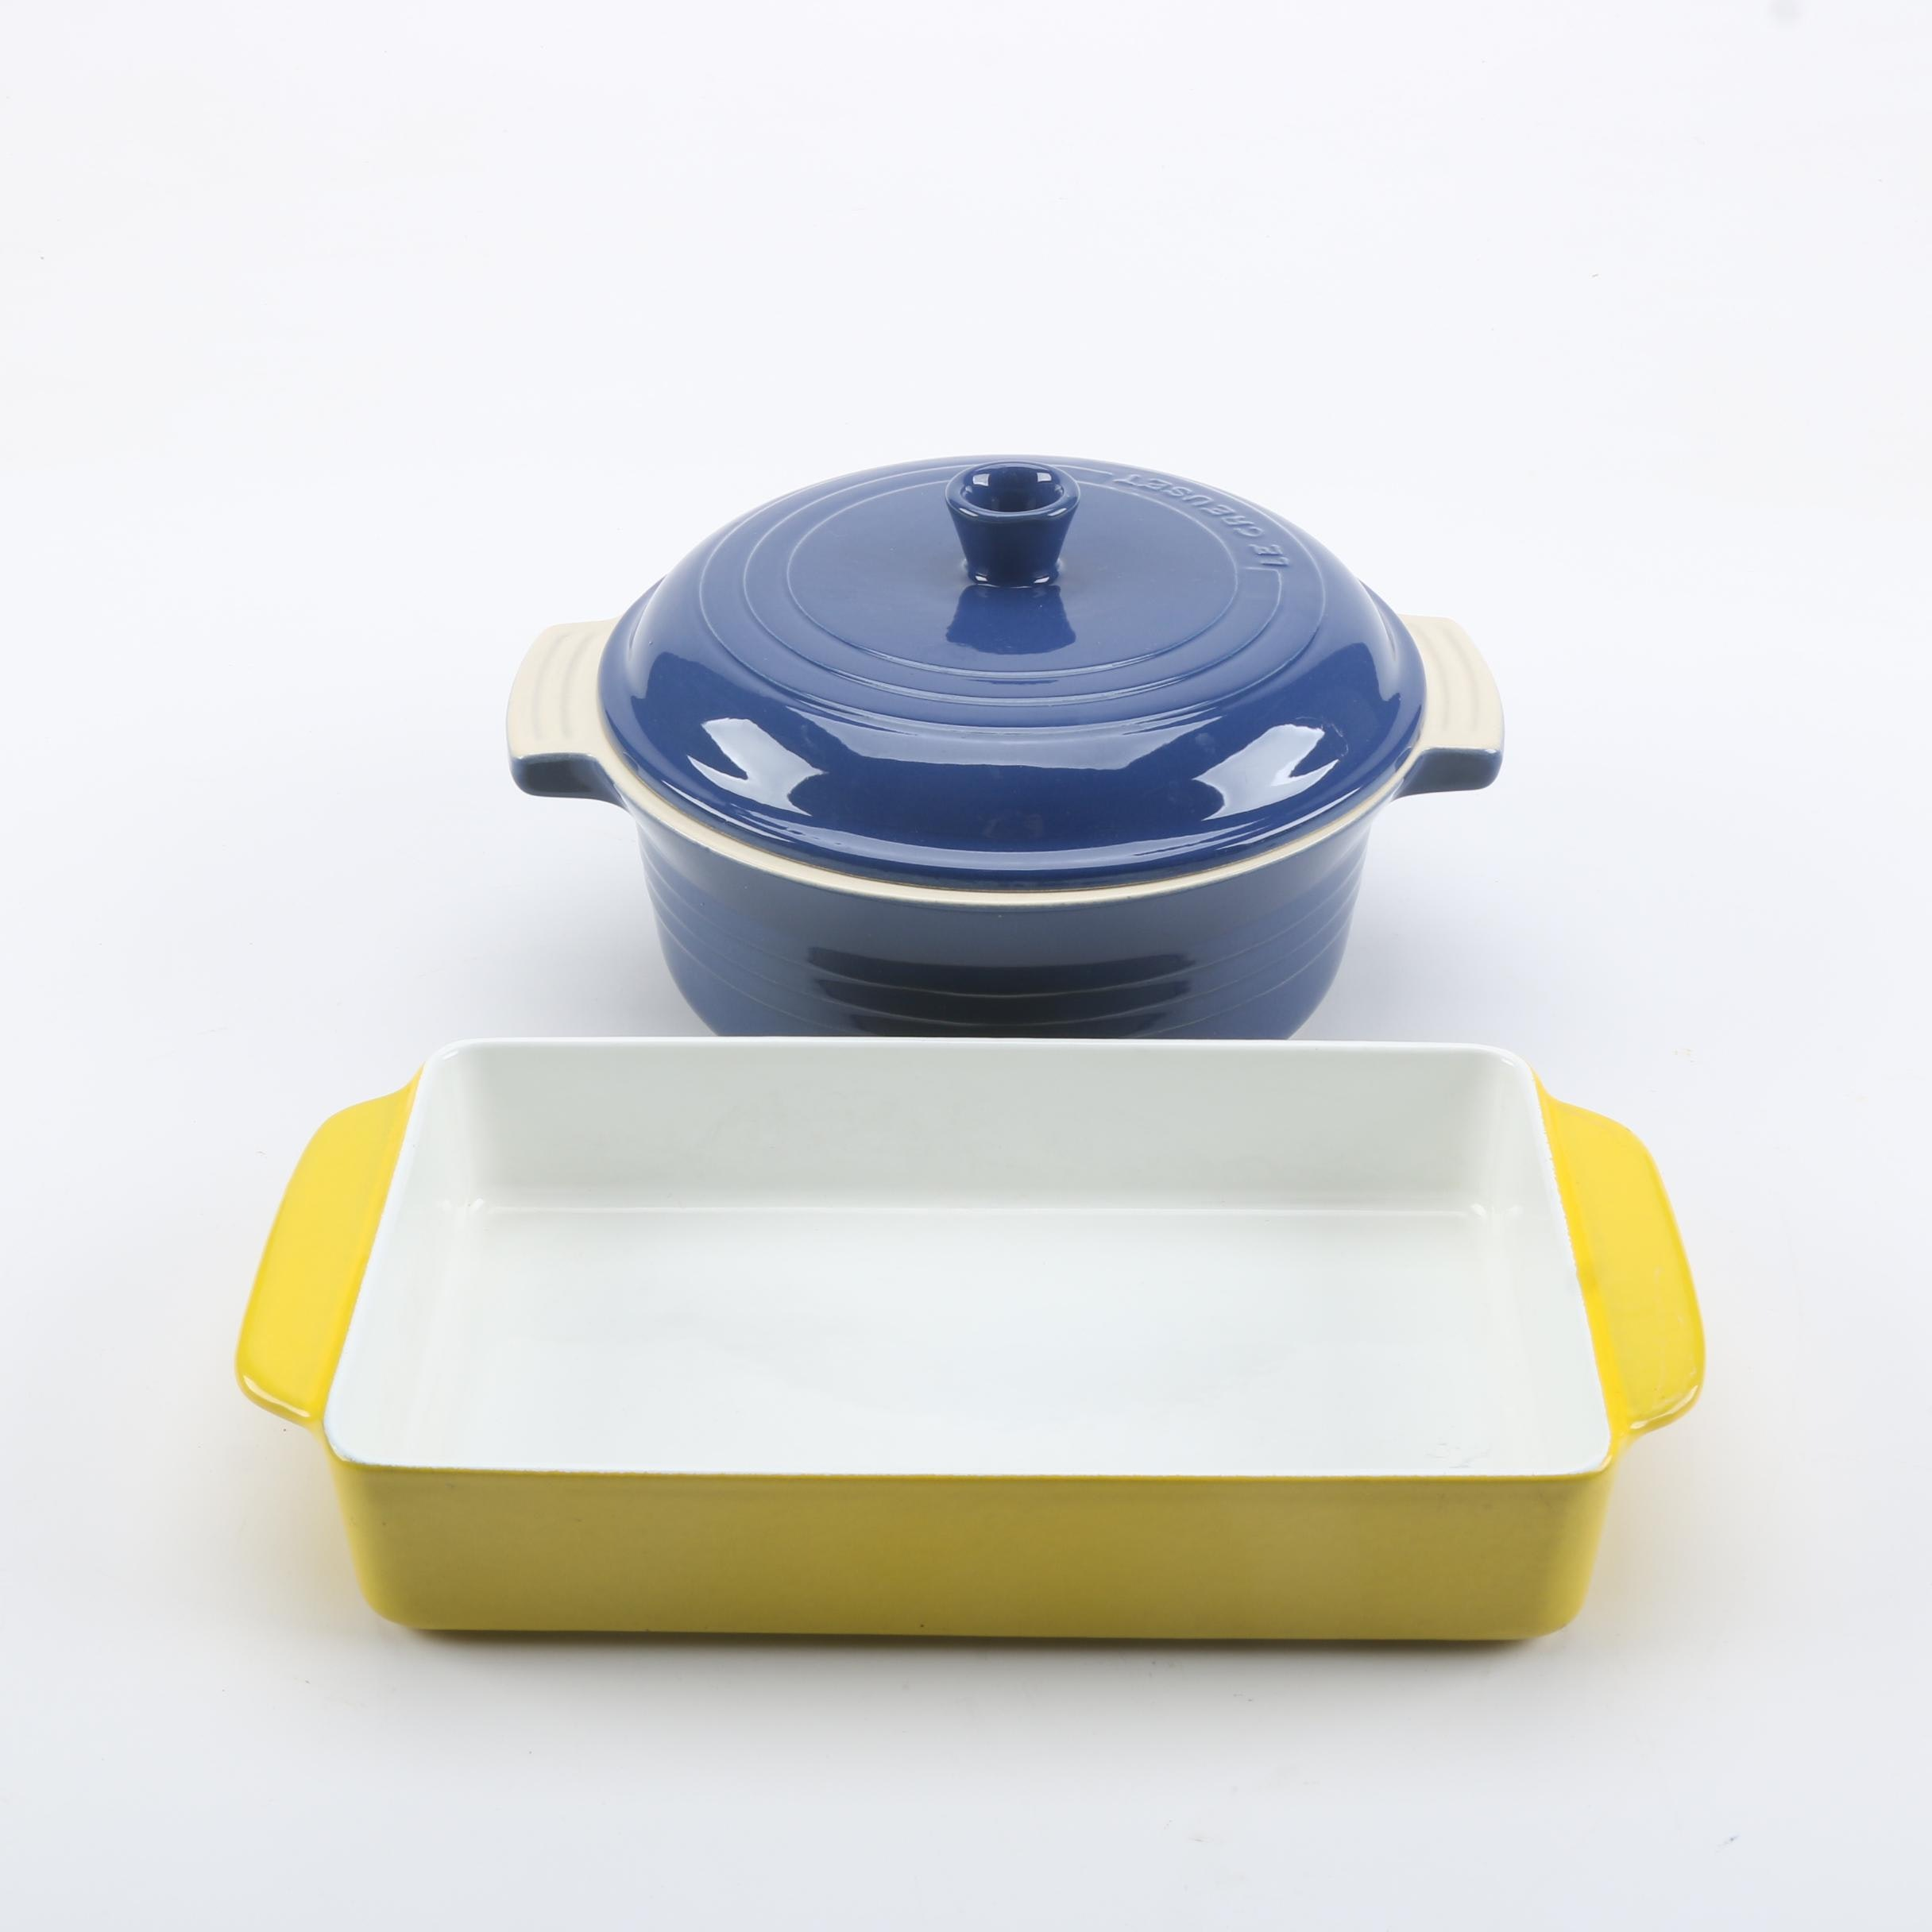 Le Creuset and Copco Enameled Cast Iron Cookware